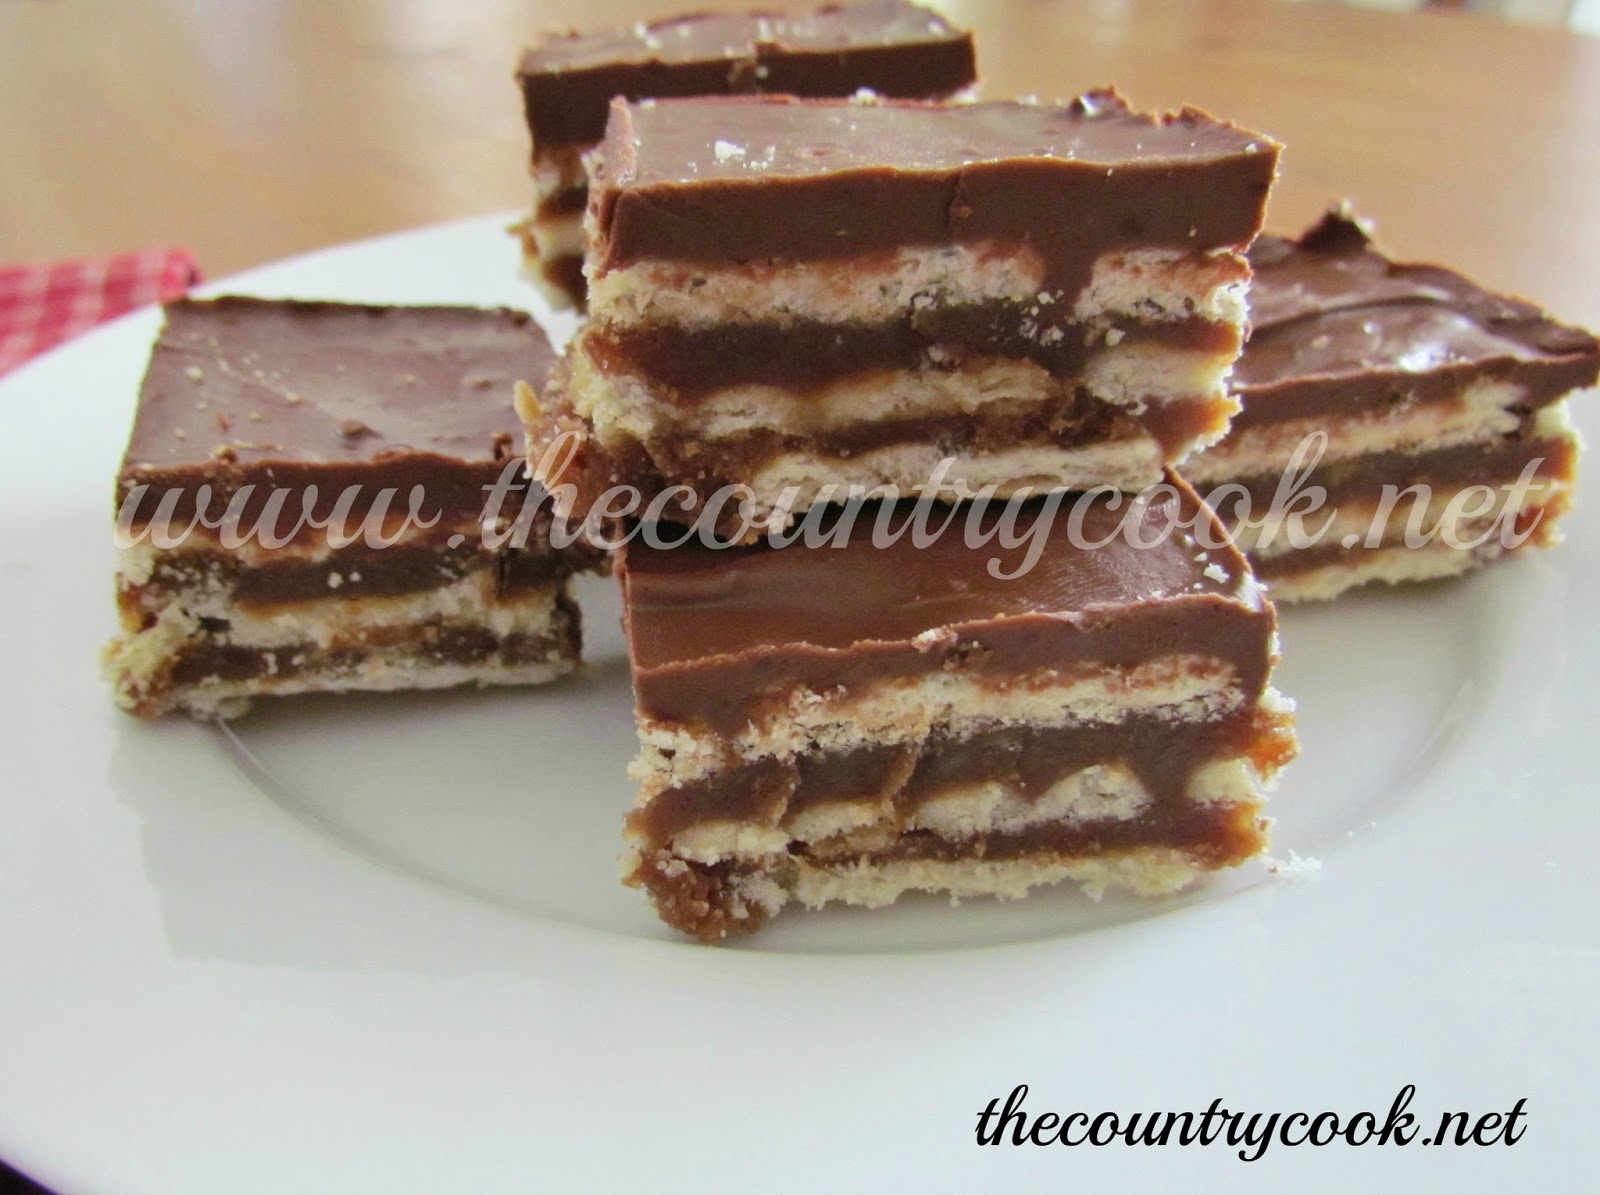 Homemade Kit Kat Bars - The Country Cook